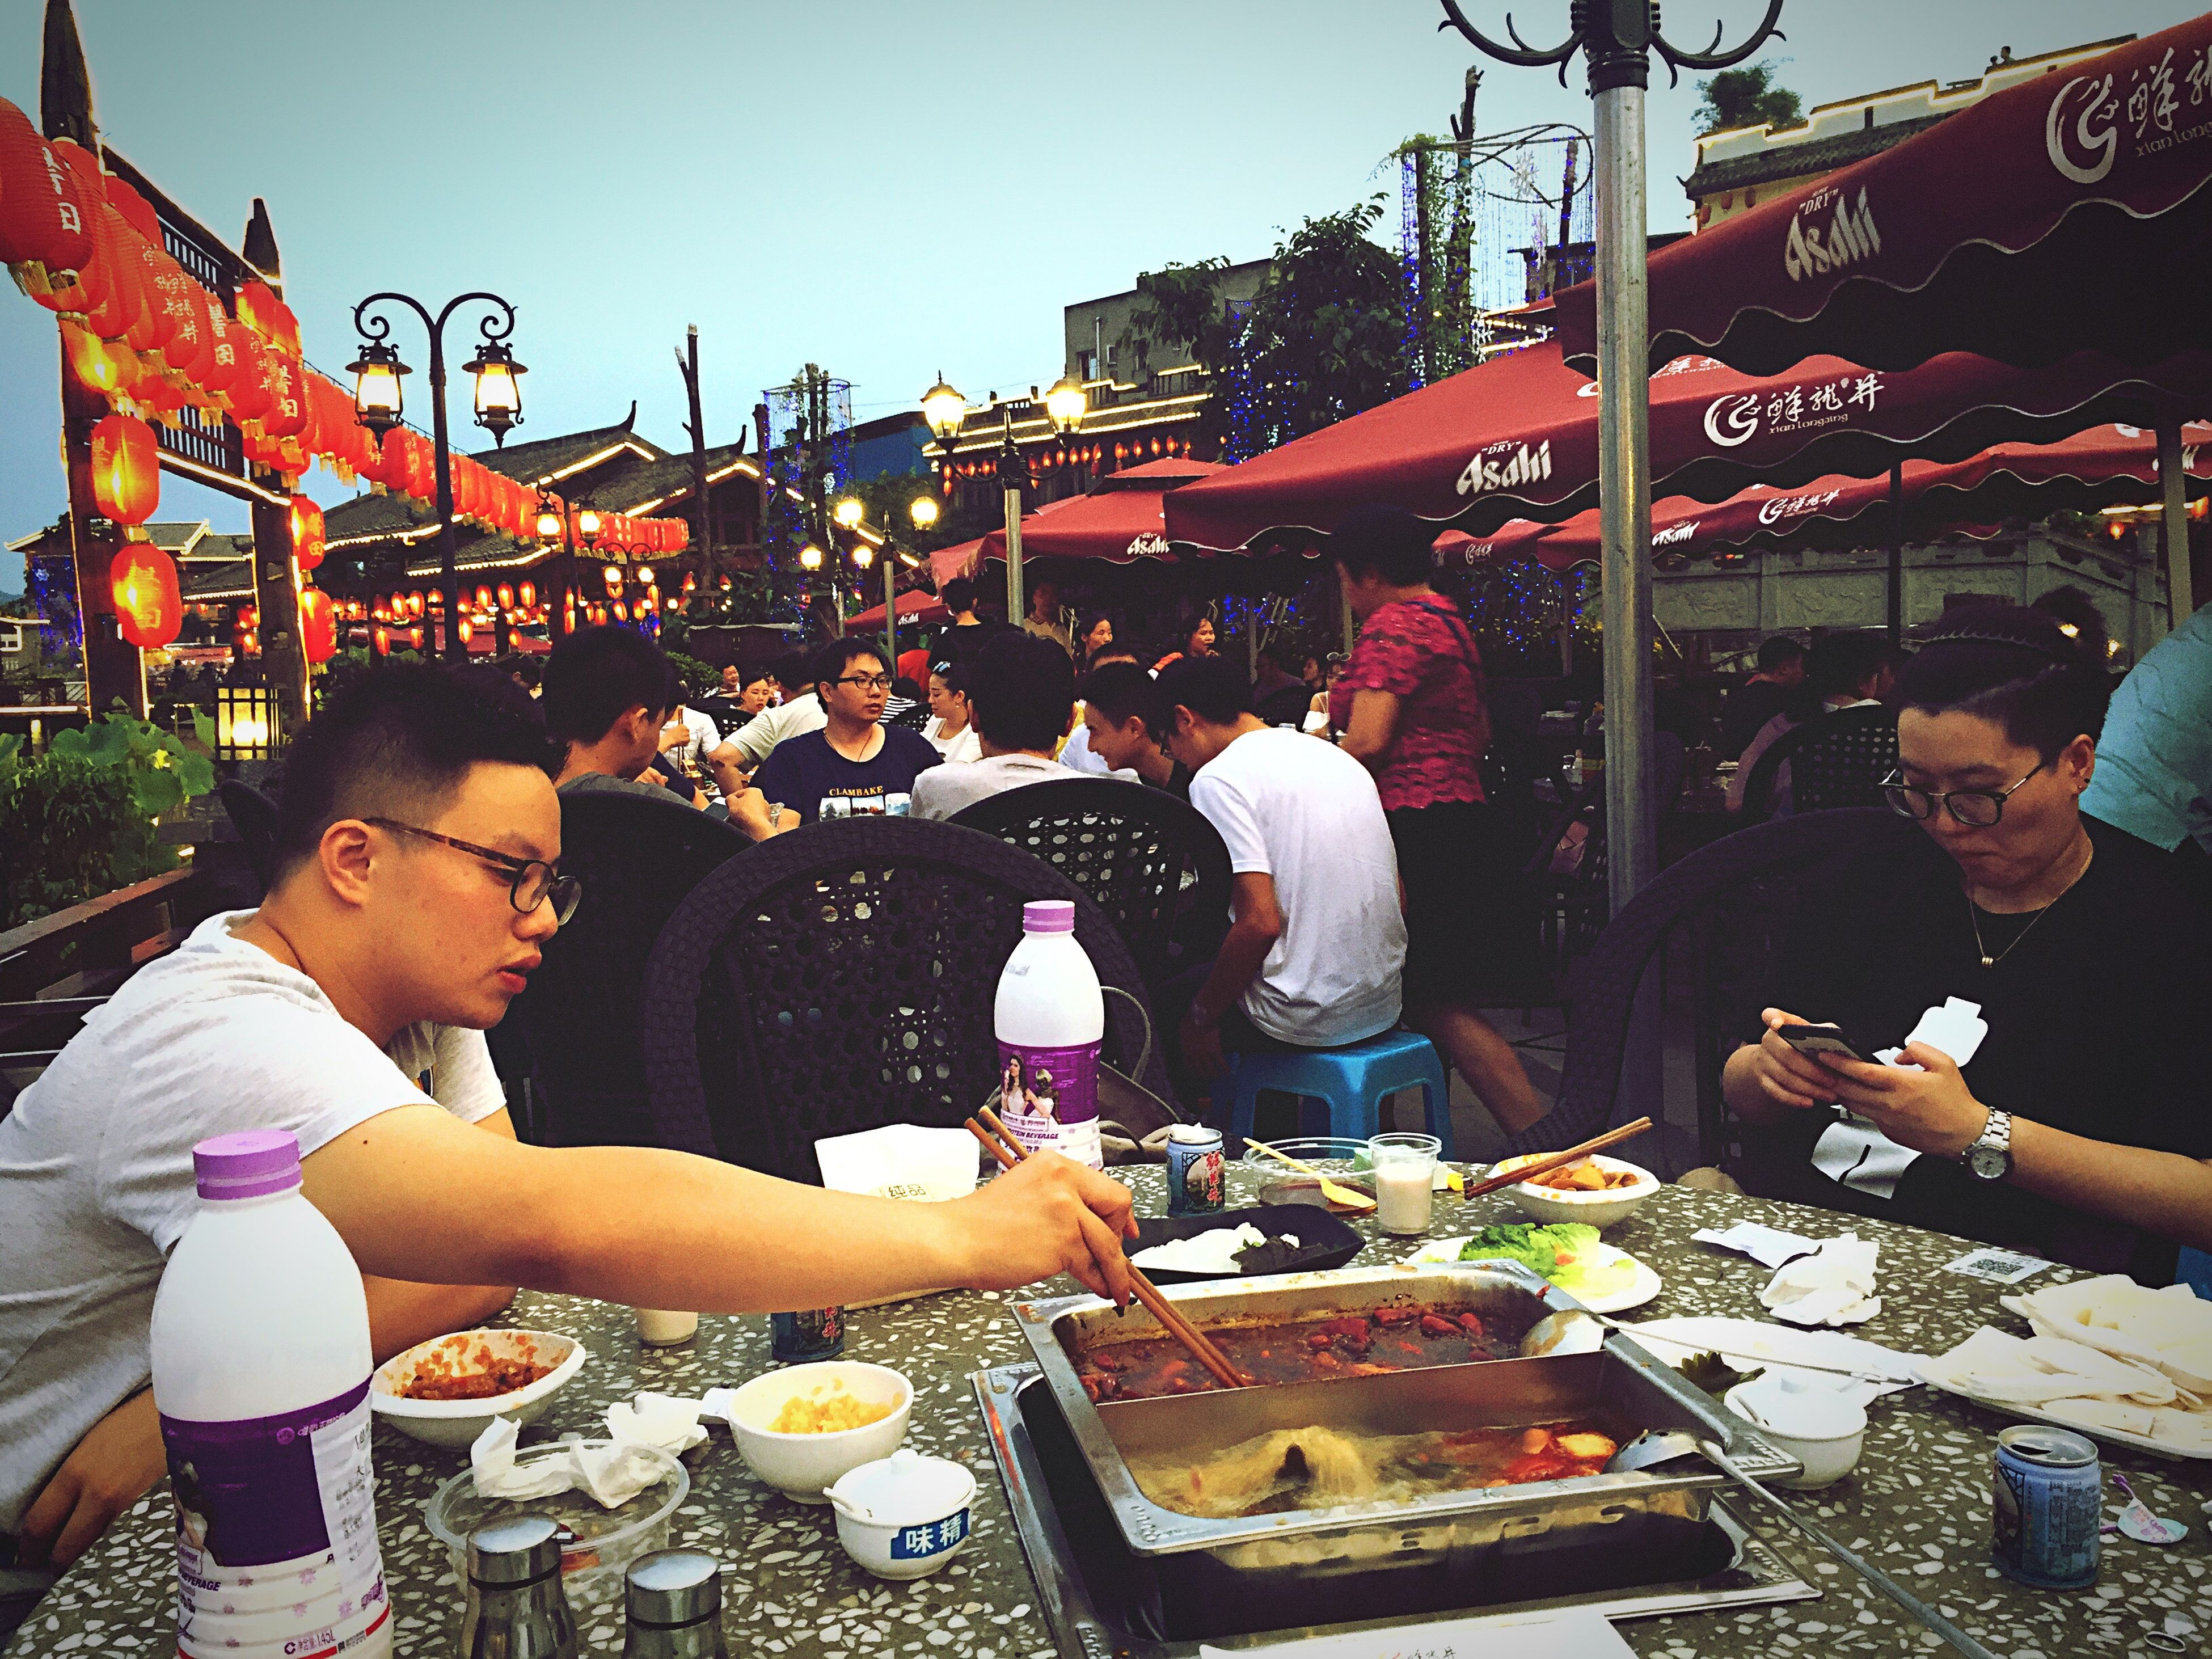 real people, food, food and drink, outdoors, eating, day, large group of people, market, men, lifestyles, people in the background, togetherness, healthy eating, building exterior, city, freshness, architecture, people